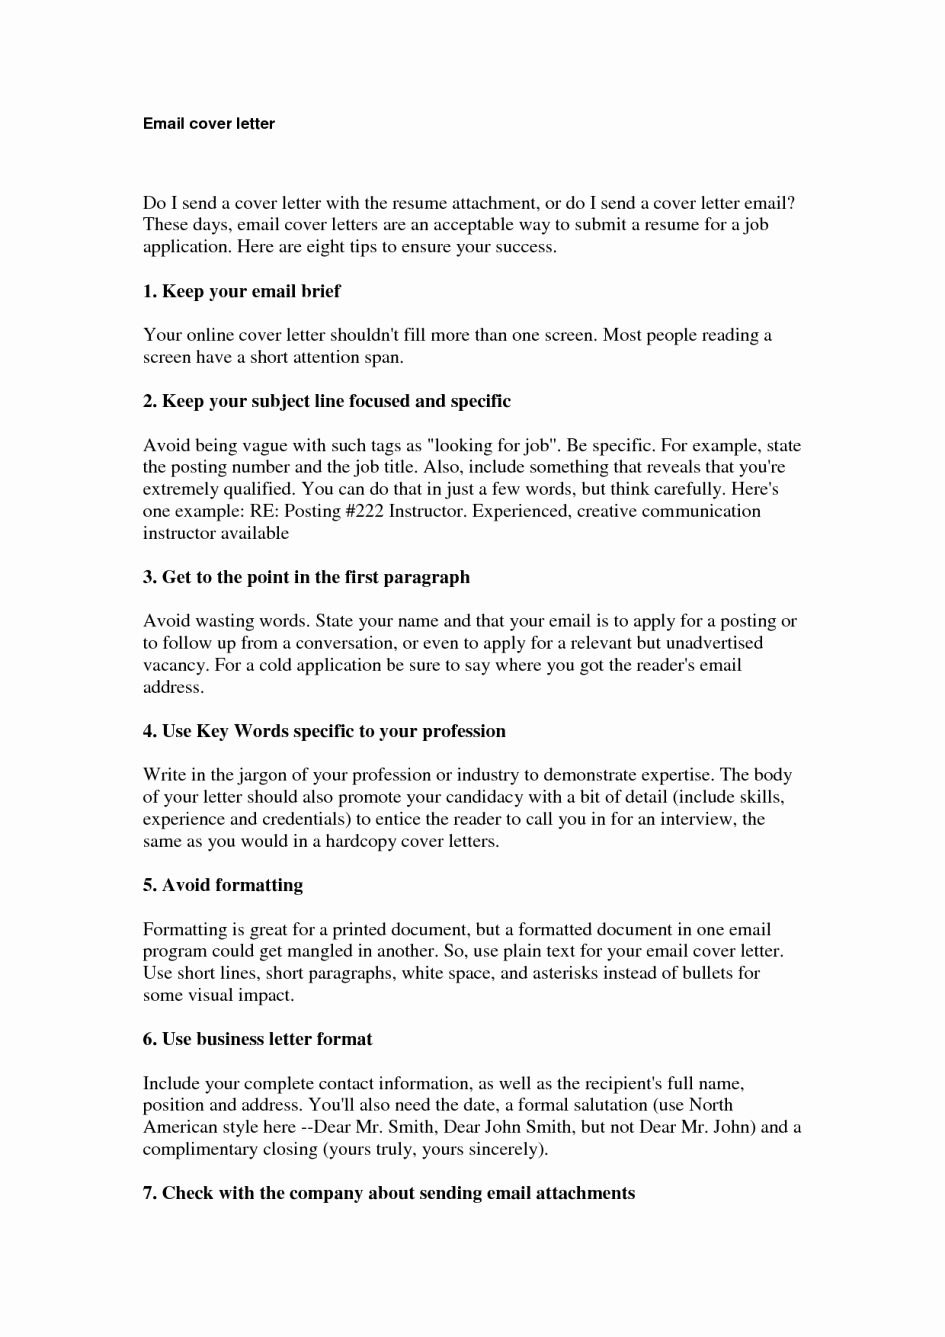 Emailed Cover Letter format Best Of Resume Cover Letter Email Sample – Perfect Resume format